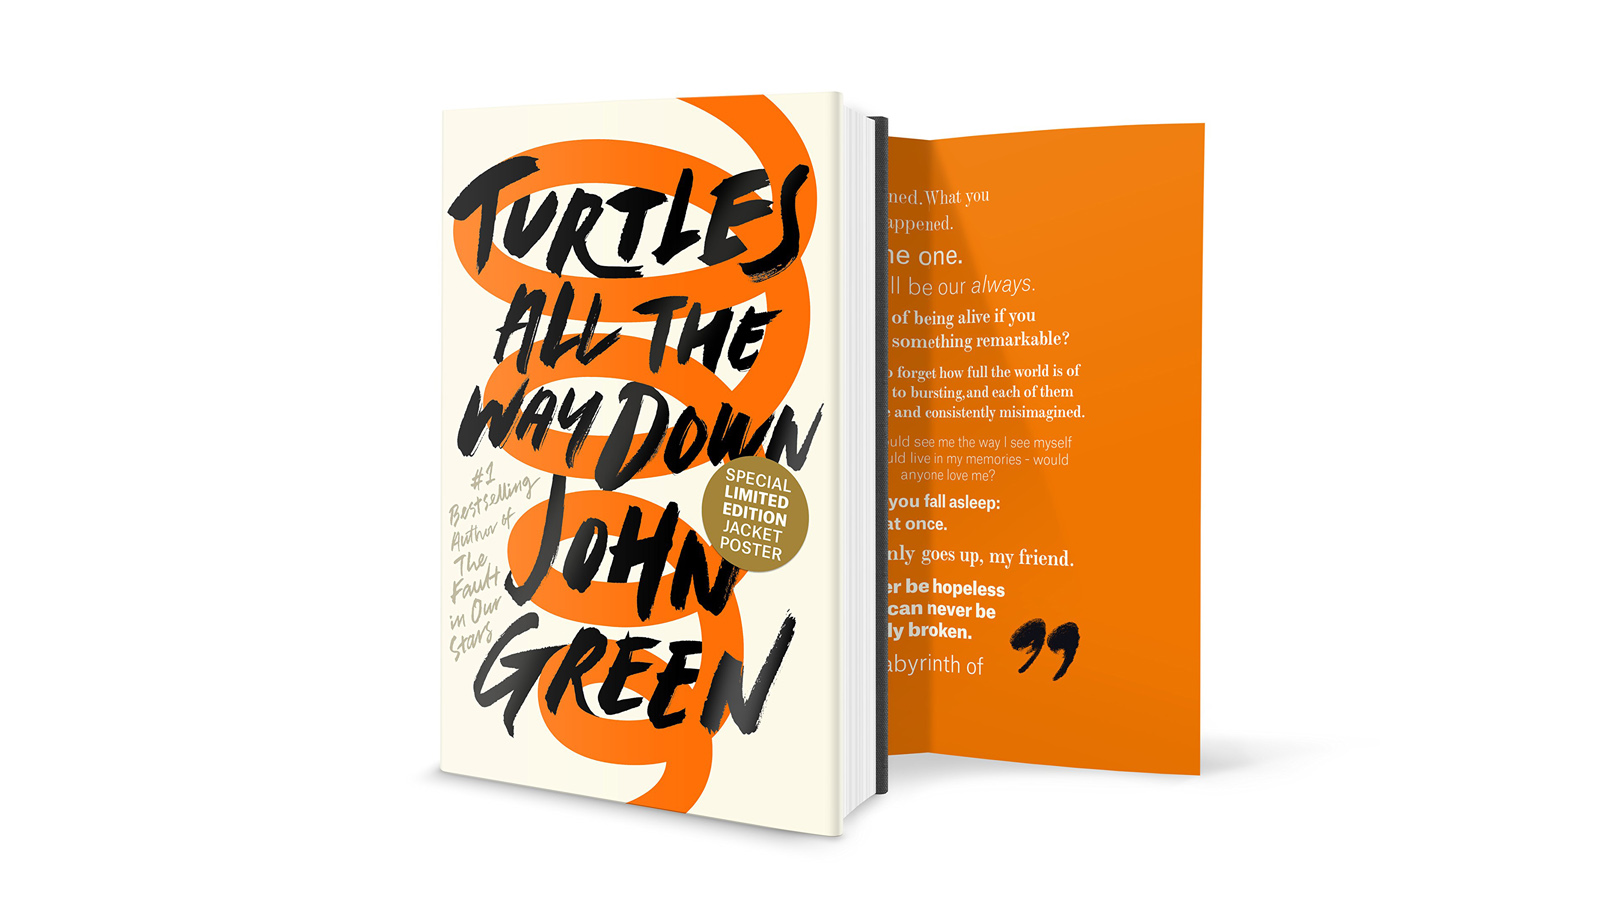 Turtles All The Way Down Book Review